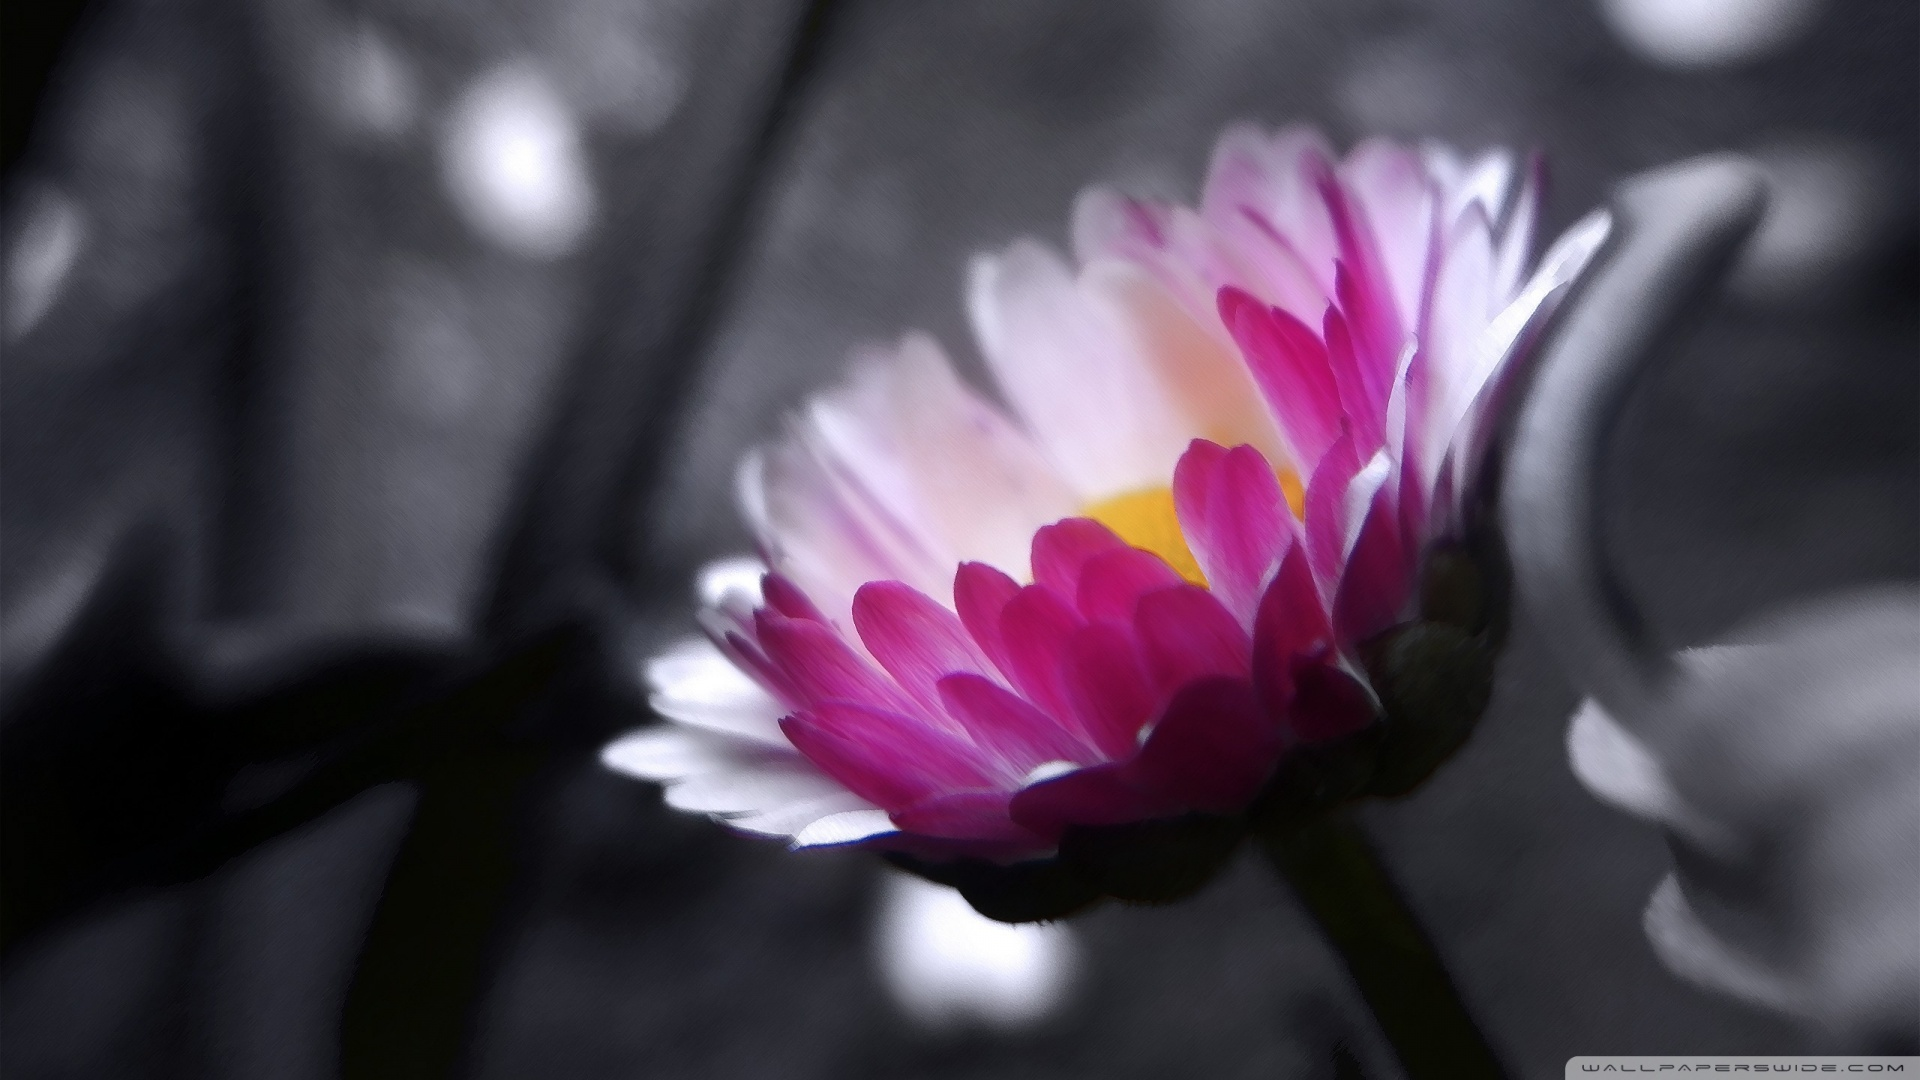 Pink Flower On Black And White Background Wallpaper 1920x1080 Pink 1920x1080